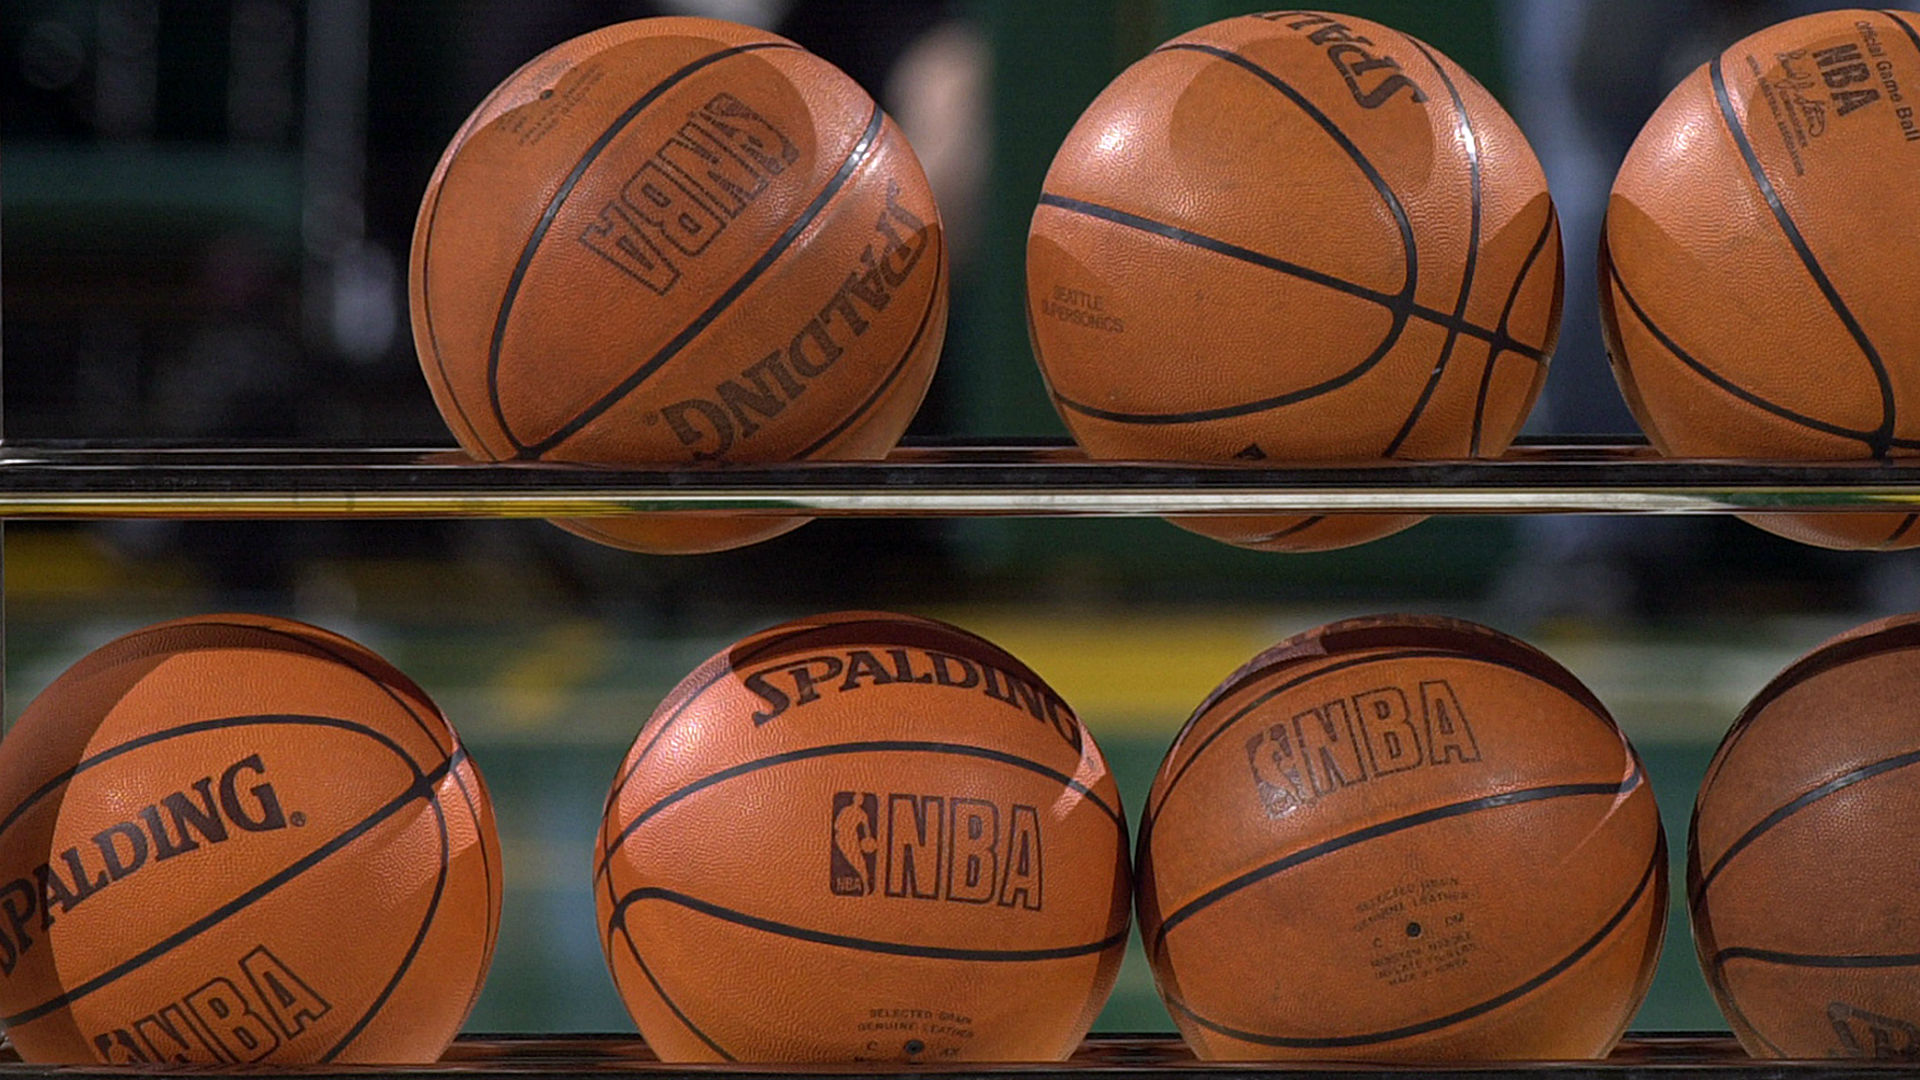 Nylon Calculus: How many possessions will the new shot clock rule impact?